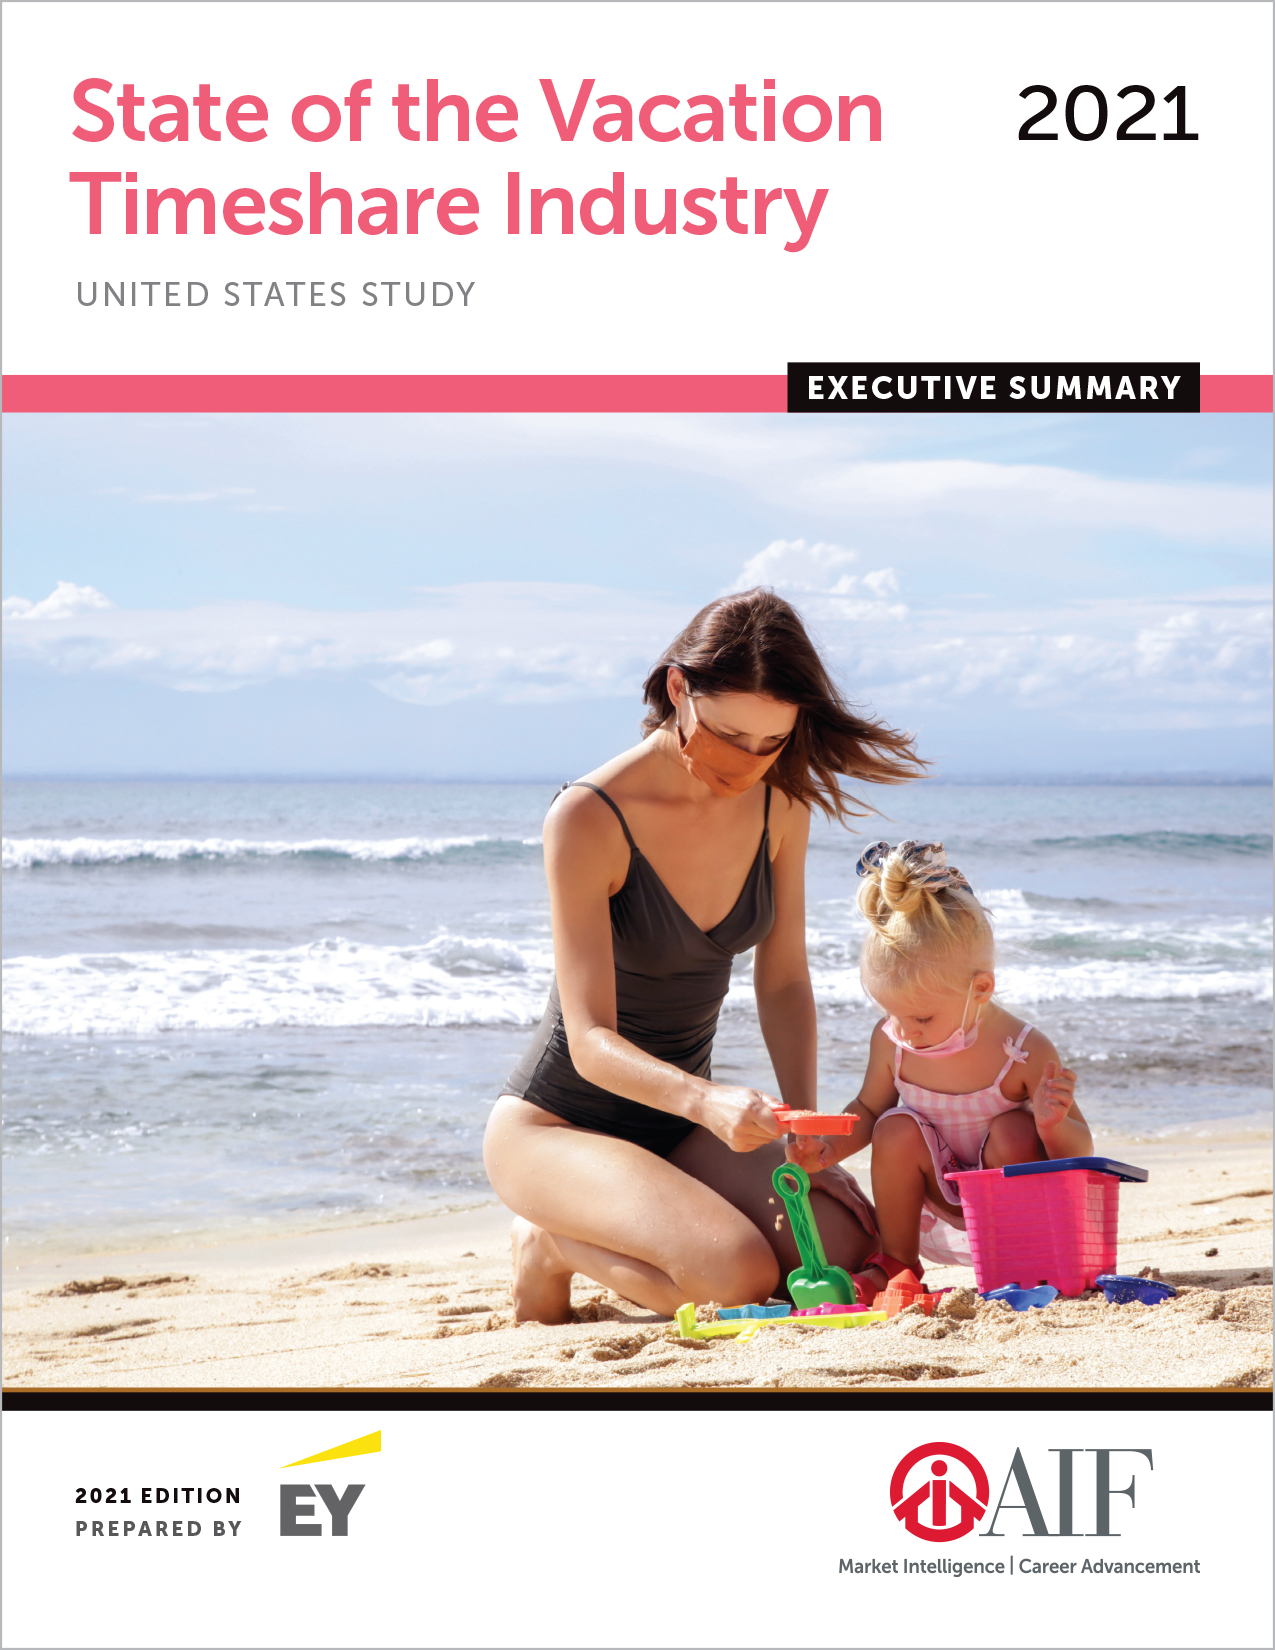 State of the Vacation Timeshare Industry, 2021 Ed. Executive Summary